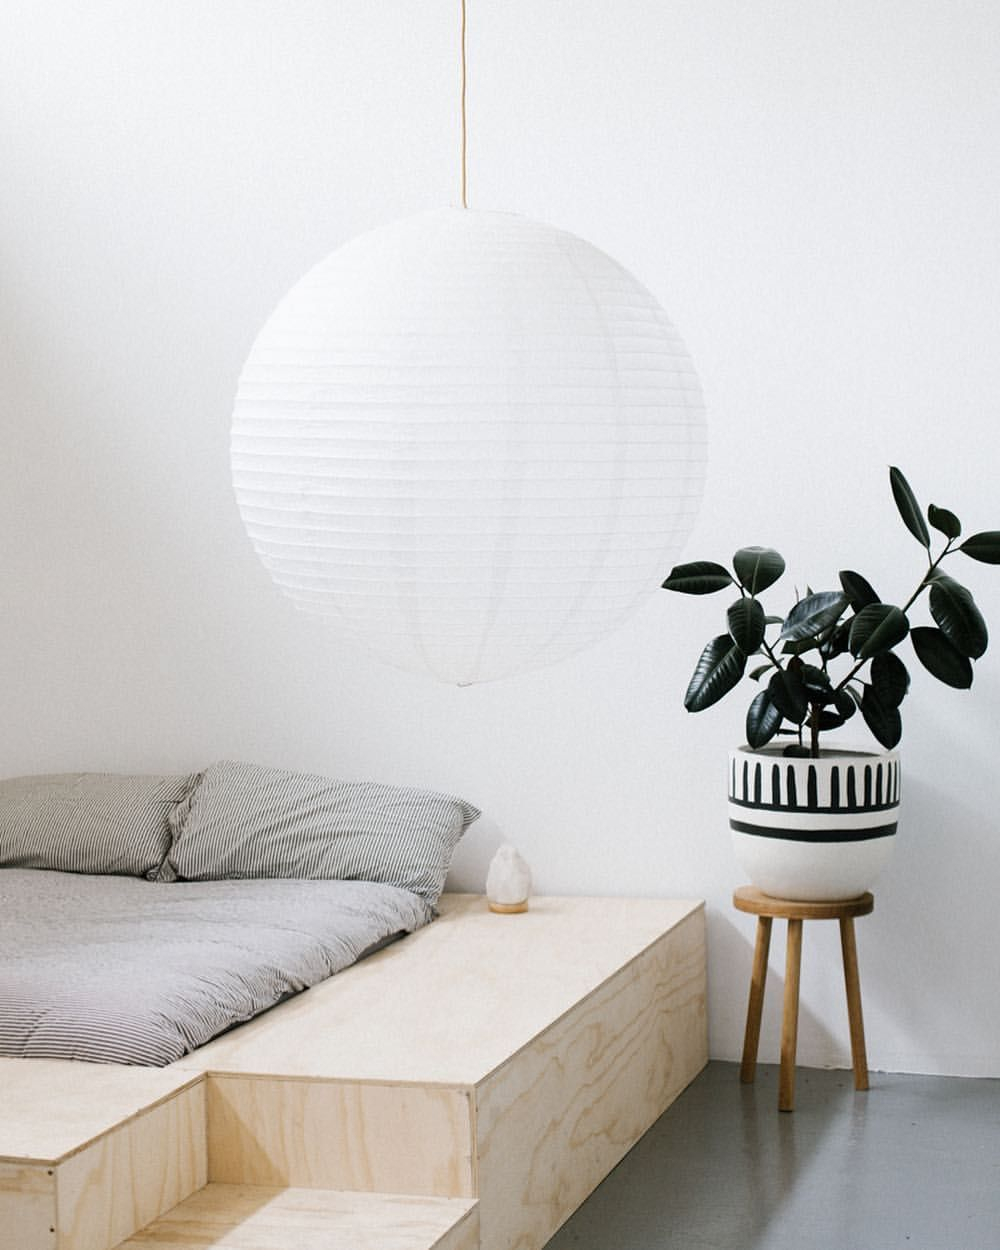 Paper Lanterns Melbourne Our Mali Pot Drum Stool And Paper Lantern Fullmoonvibes Shot By